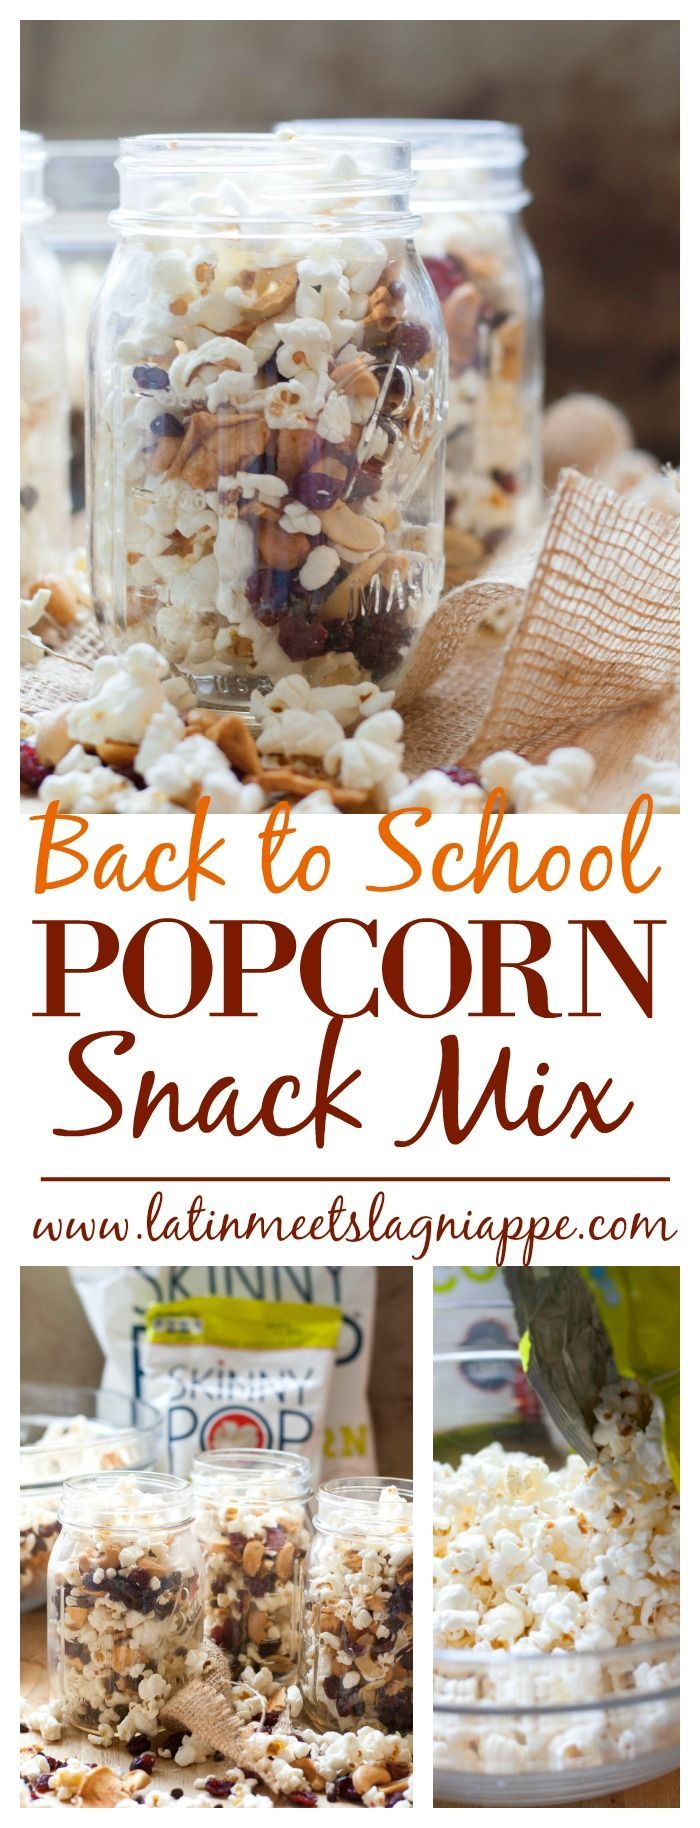 Love this Back to School Popcorn Snack Mix! A perfect lunchbox treat! #ad #SkinnyPopB2S